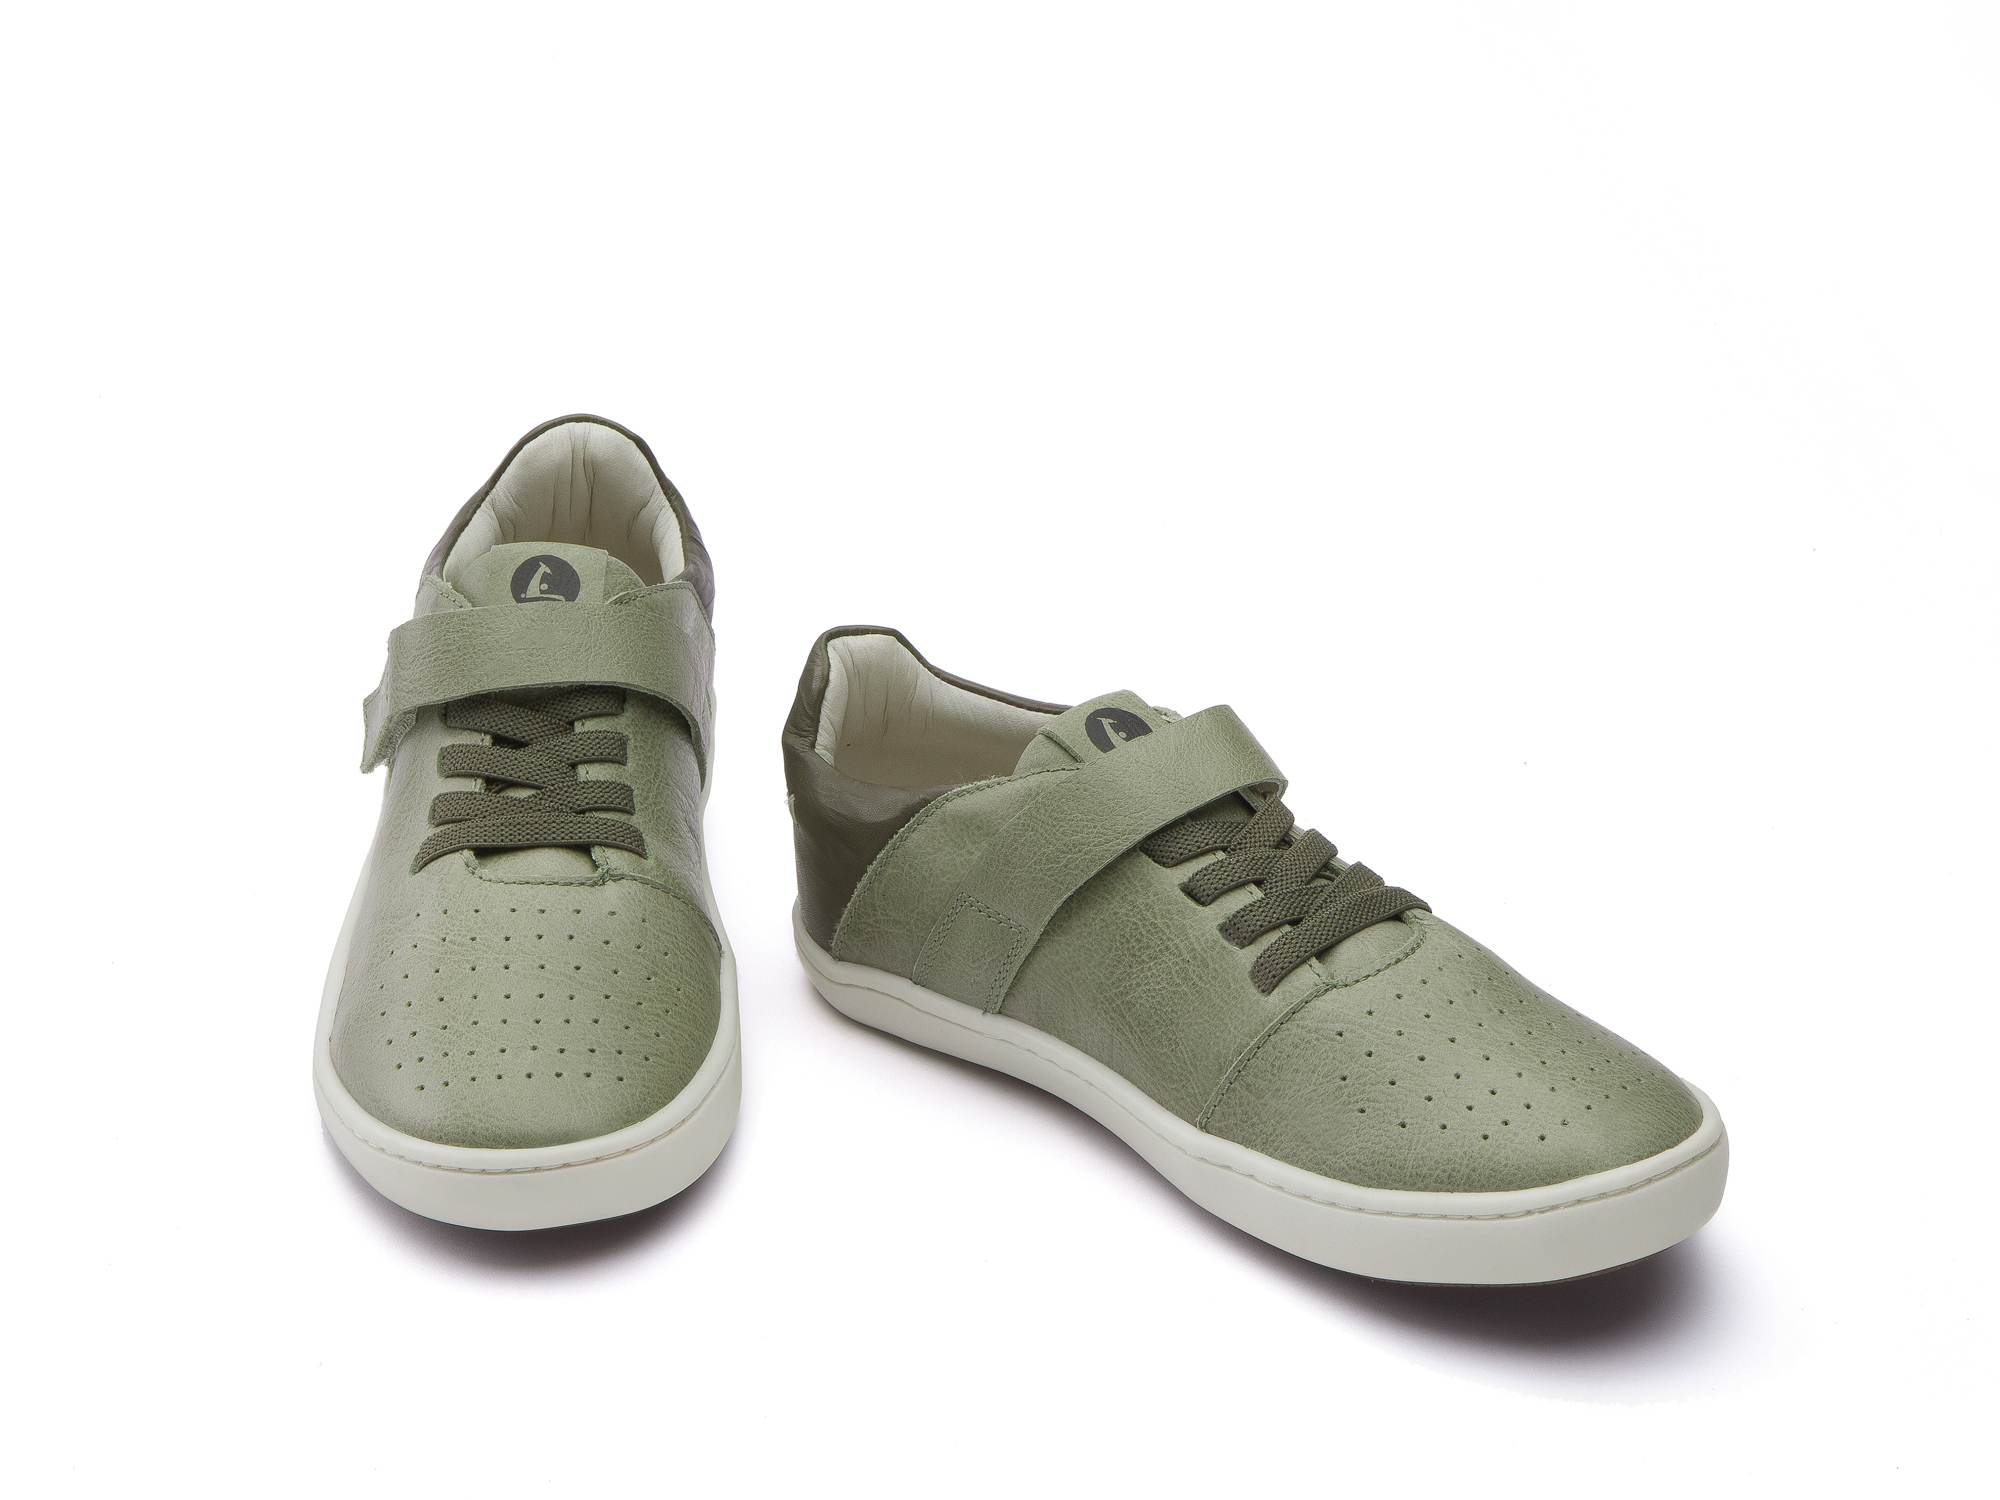 Tênis Slice Olive Brush/ Green Crush Junior 4 à 8 anos - 1